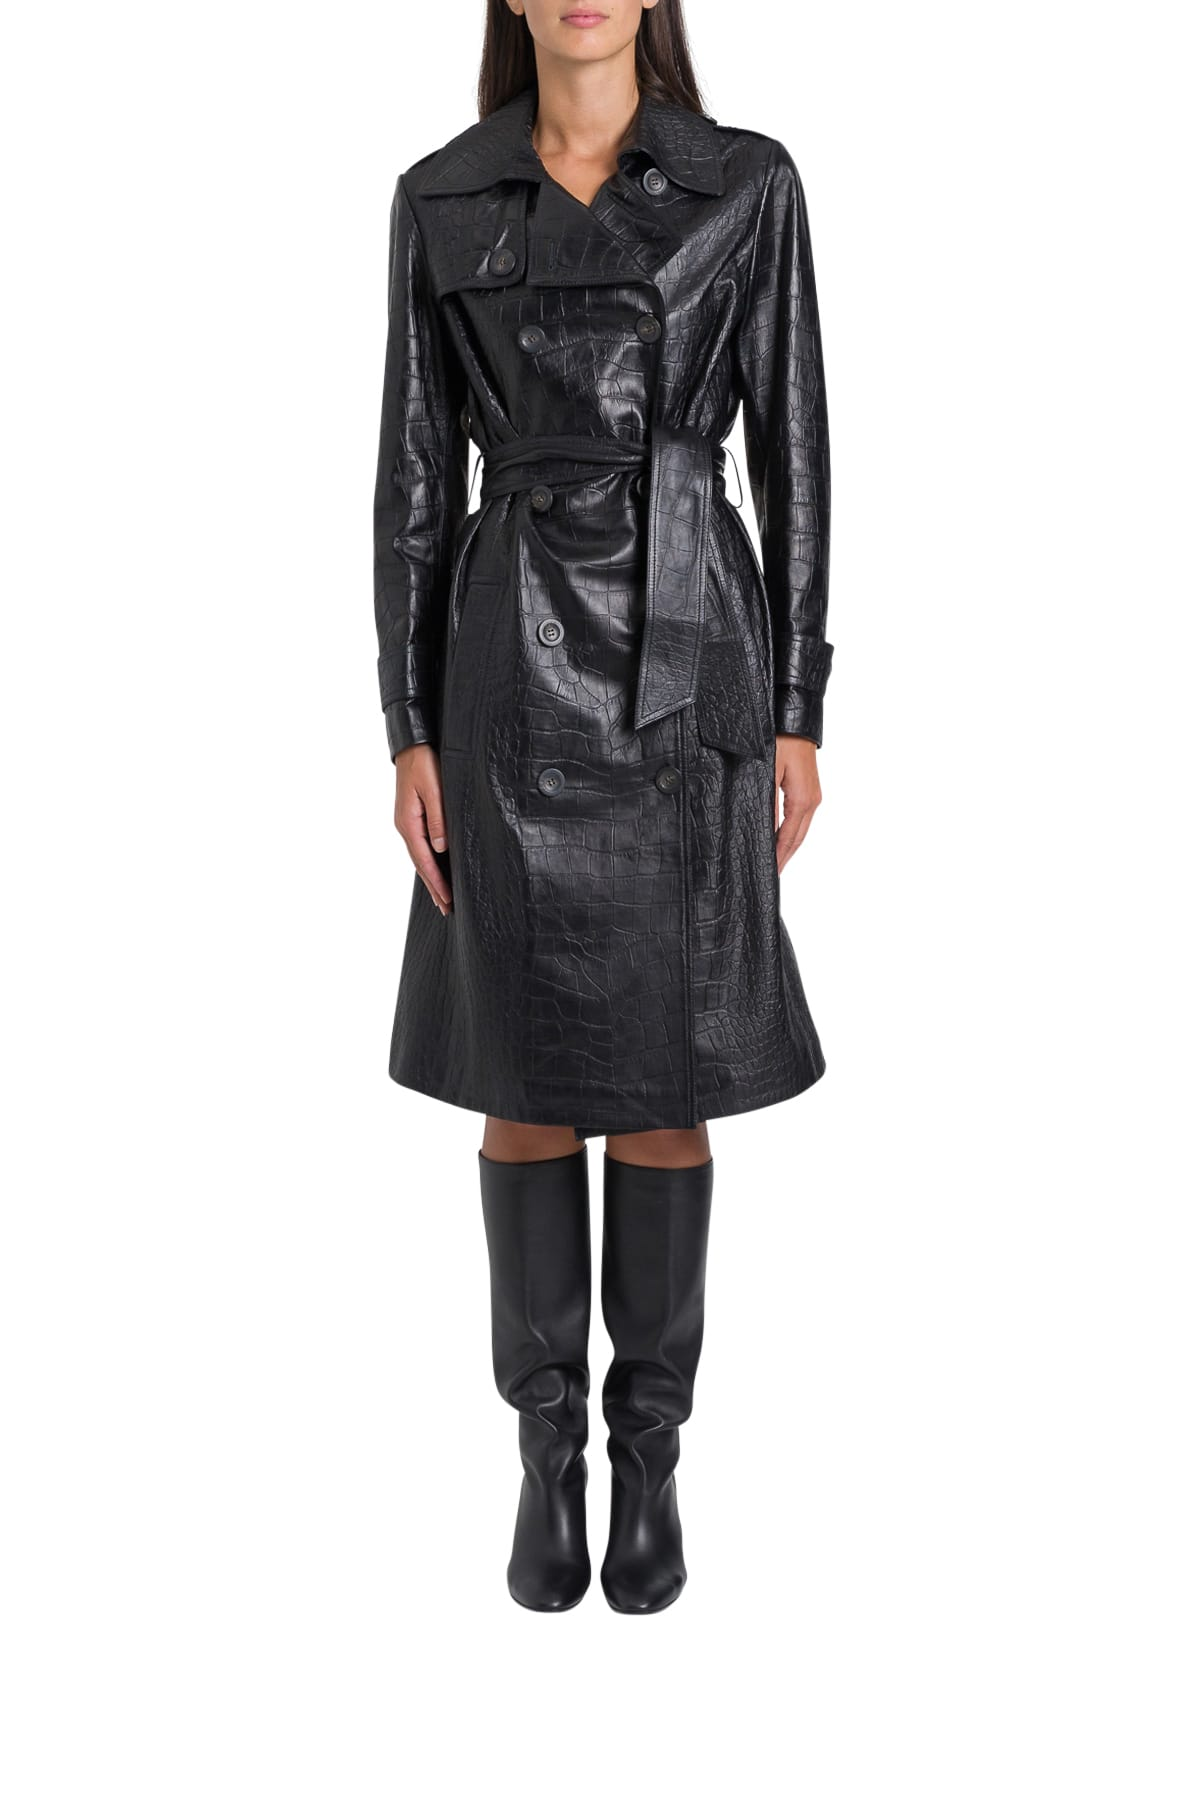 Photo of  ARMA Nana Cocco Prited Leather Trench- shop ARMA jackets online sales